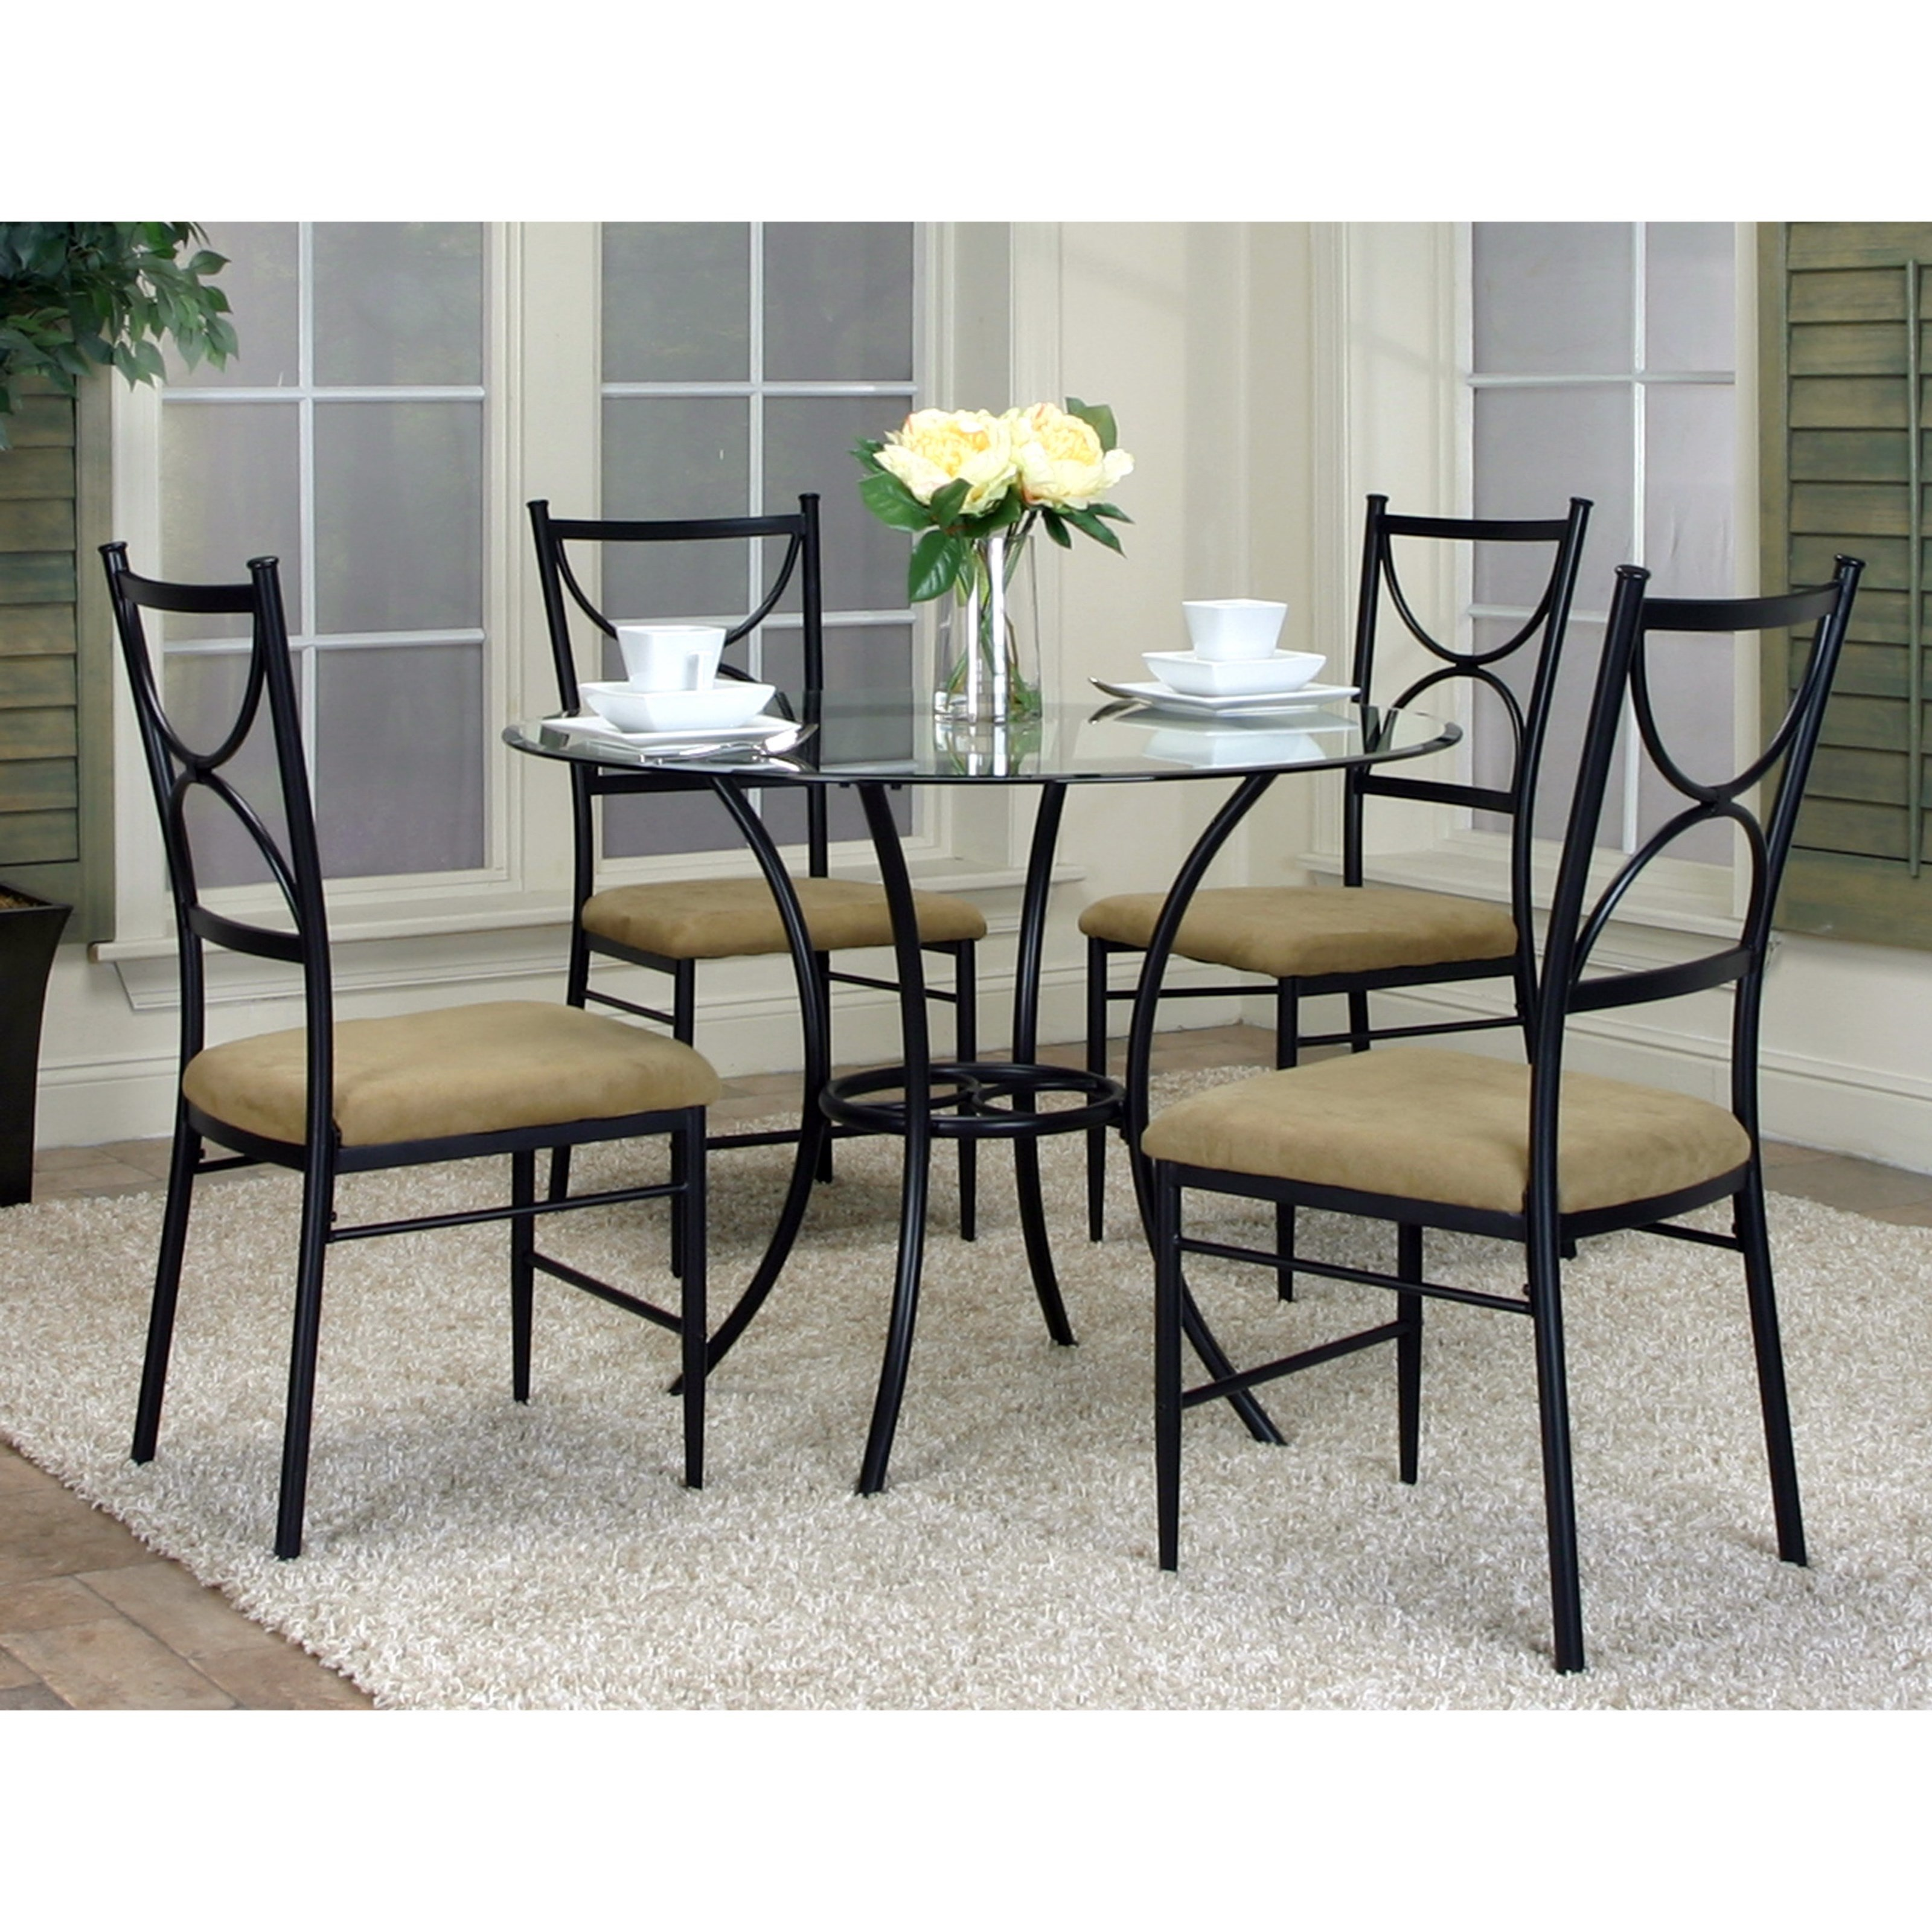 Cramco, Inc Hudson 5-Piece Round Glass Top Table Set - Item Number: W2230-70+41